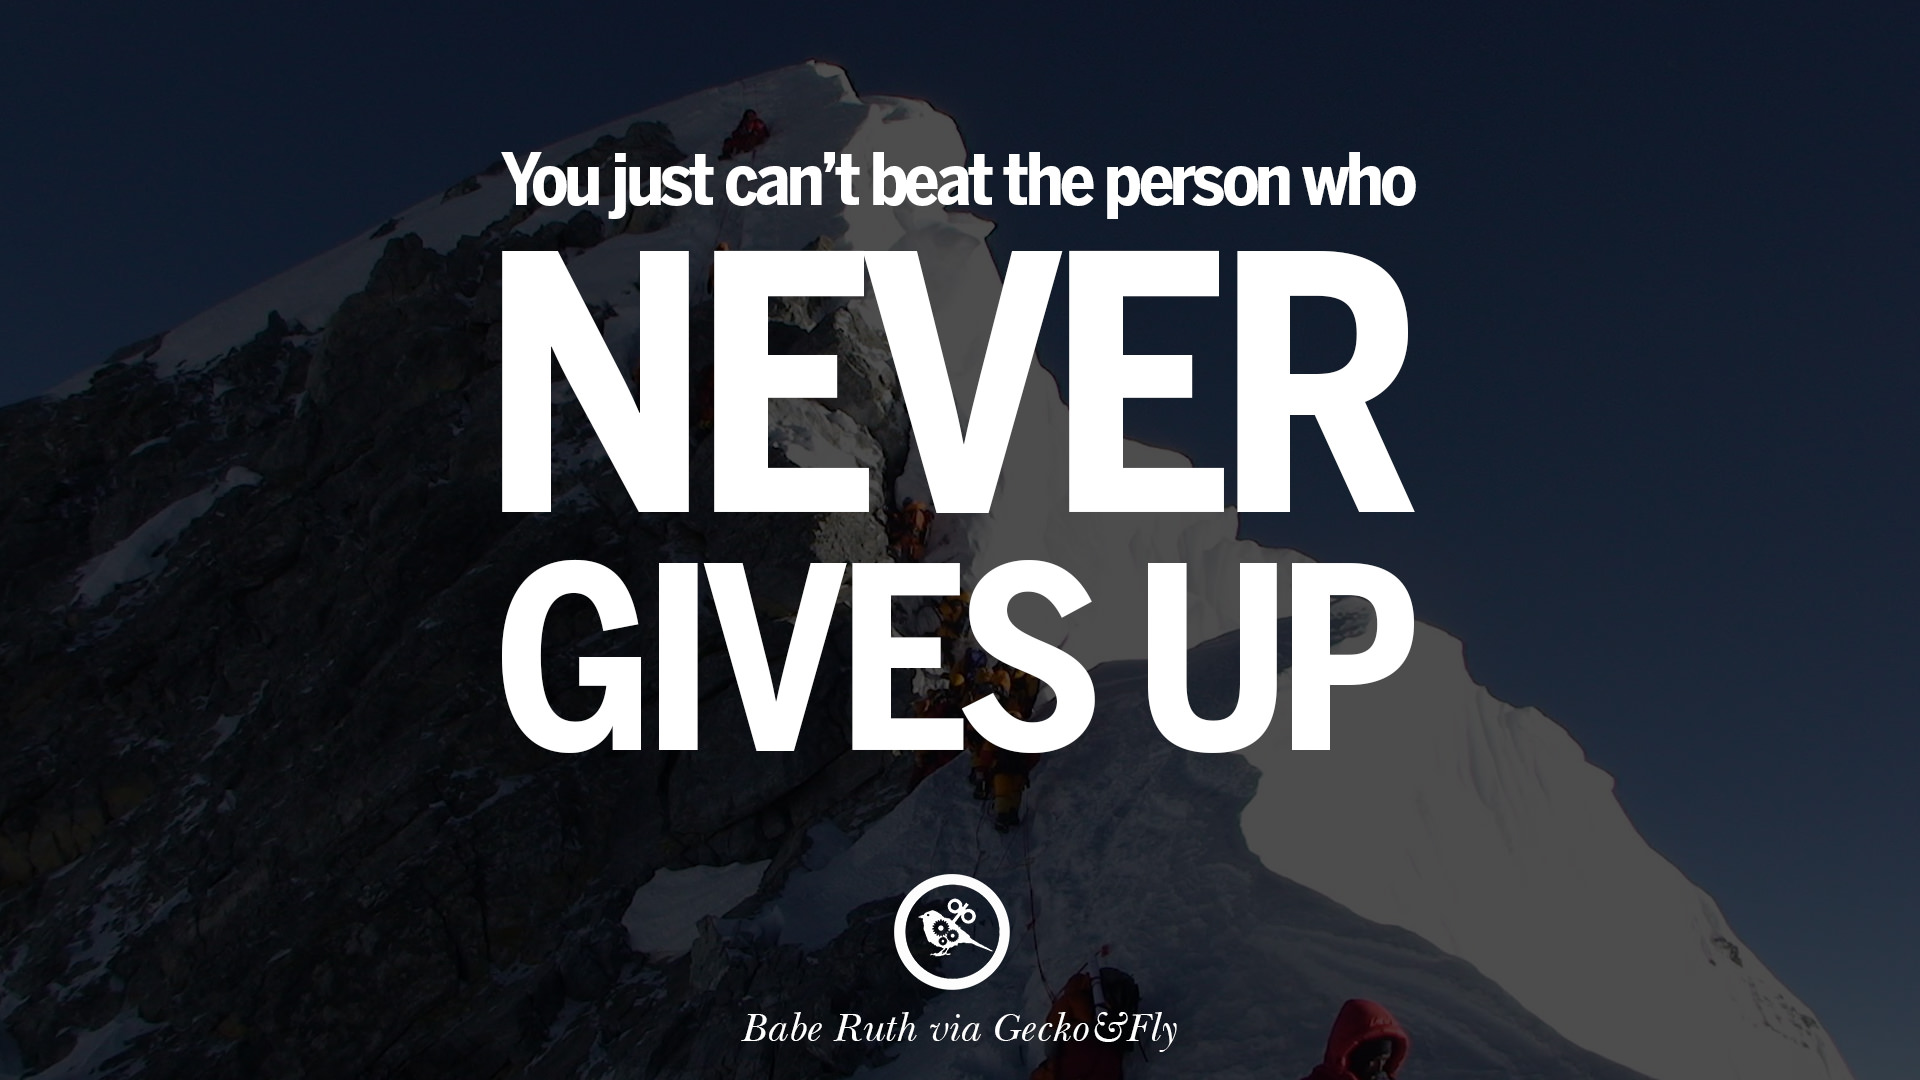 Sports Motivational Quotes 20 Encouraging And Motivational Poster Quotes On Sports And Life